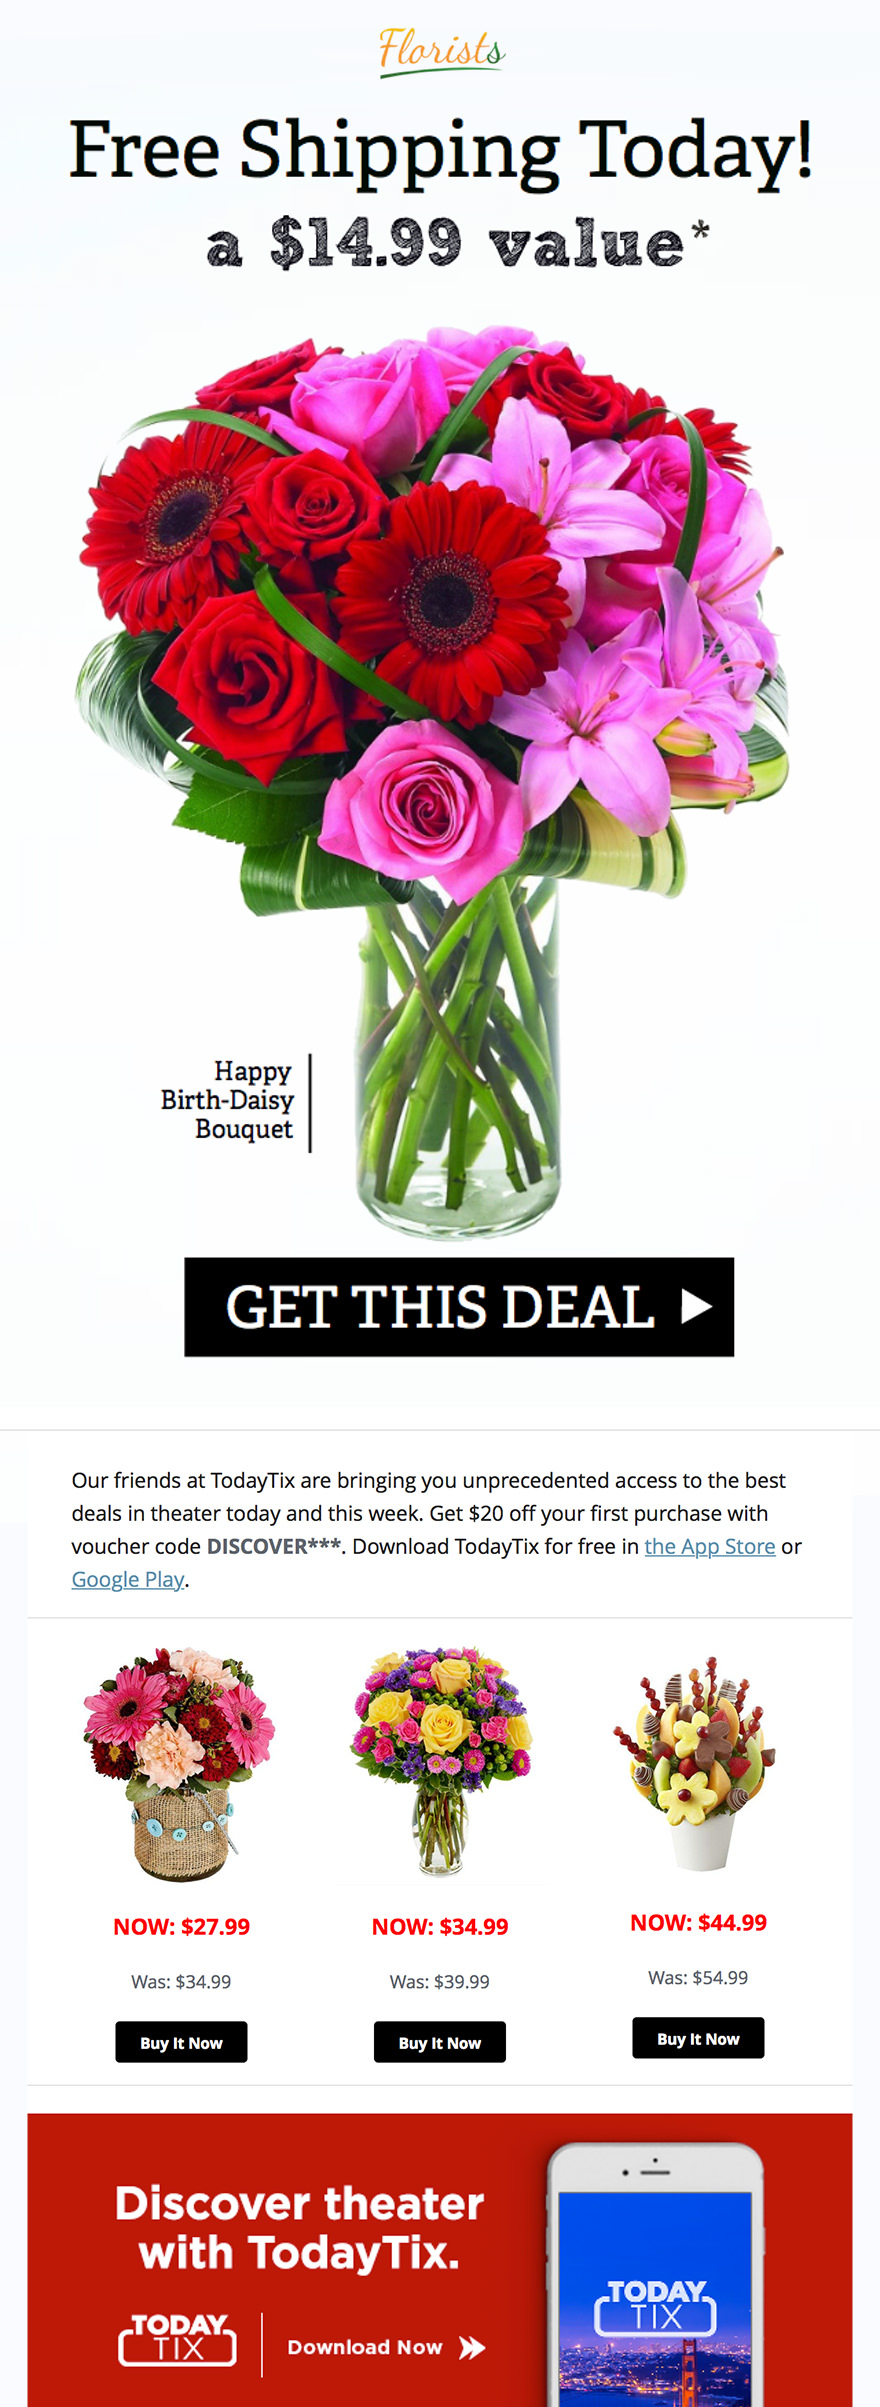 Shopify Integration - Offer to Repeat Customers - Florists Email